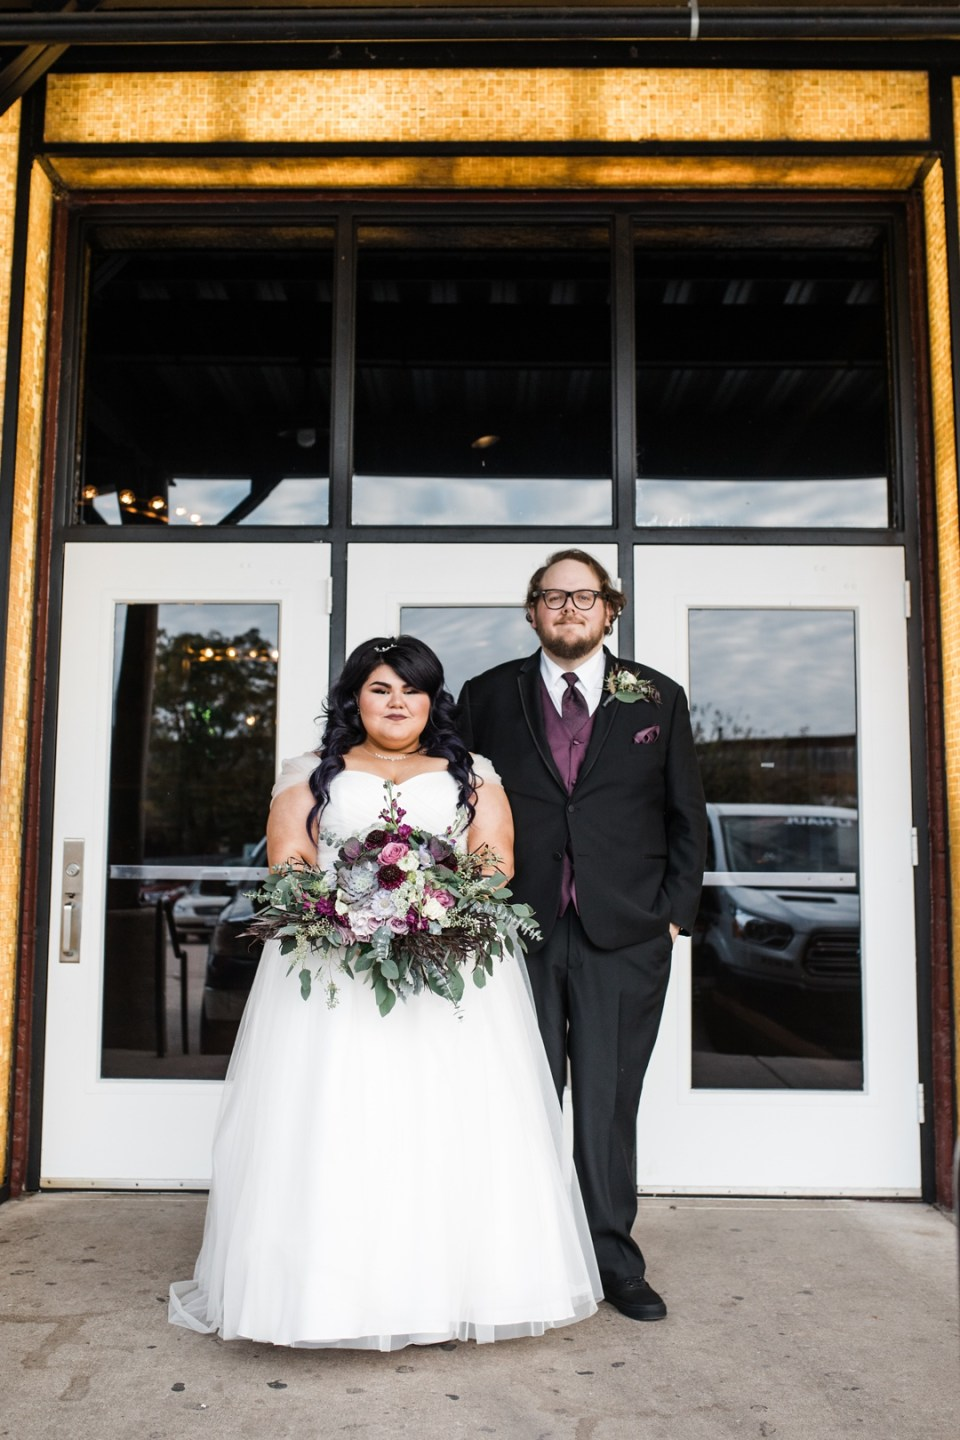 gilleys_dallas_wedding-39